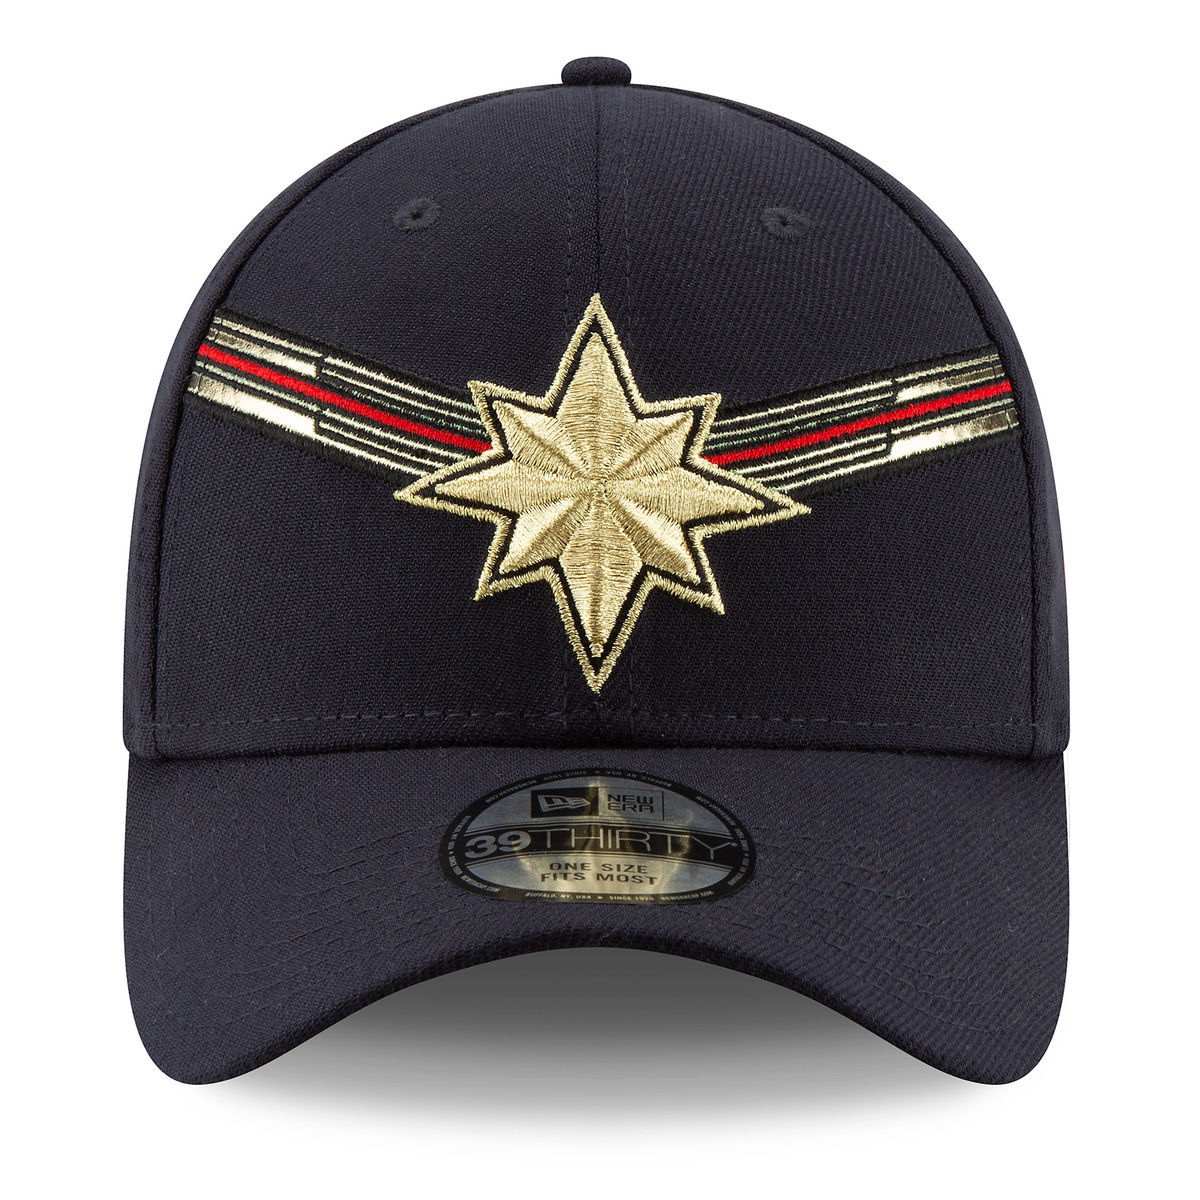 Product Image of Marvel s Captain Marvel Baseball Cap for Adults by New Era  - Marvel Studios 7ae444d8d6a